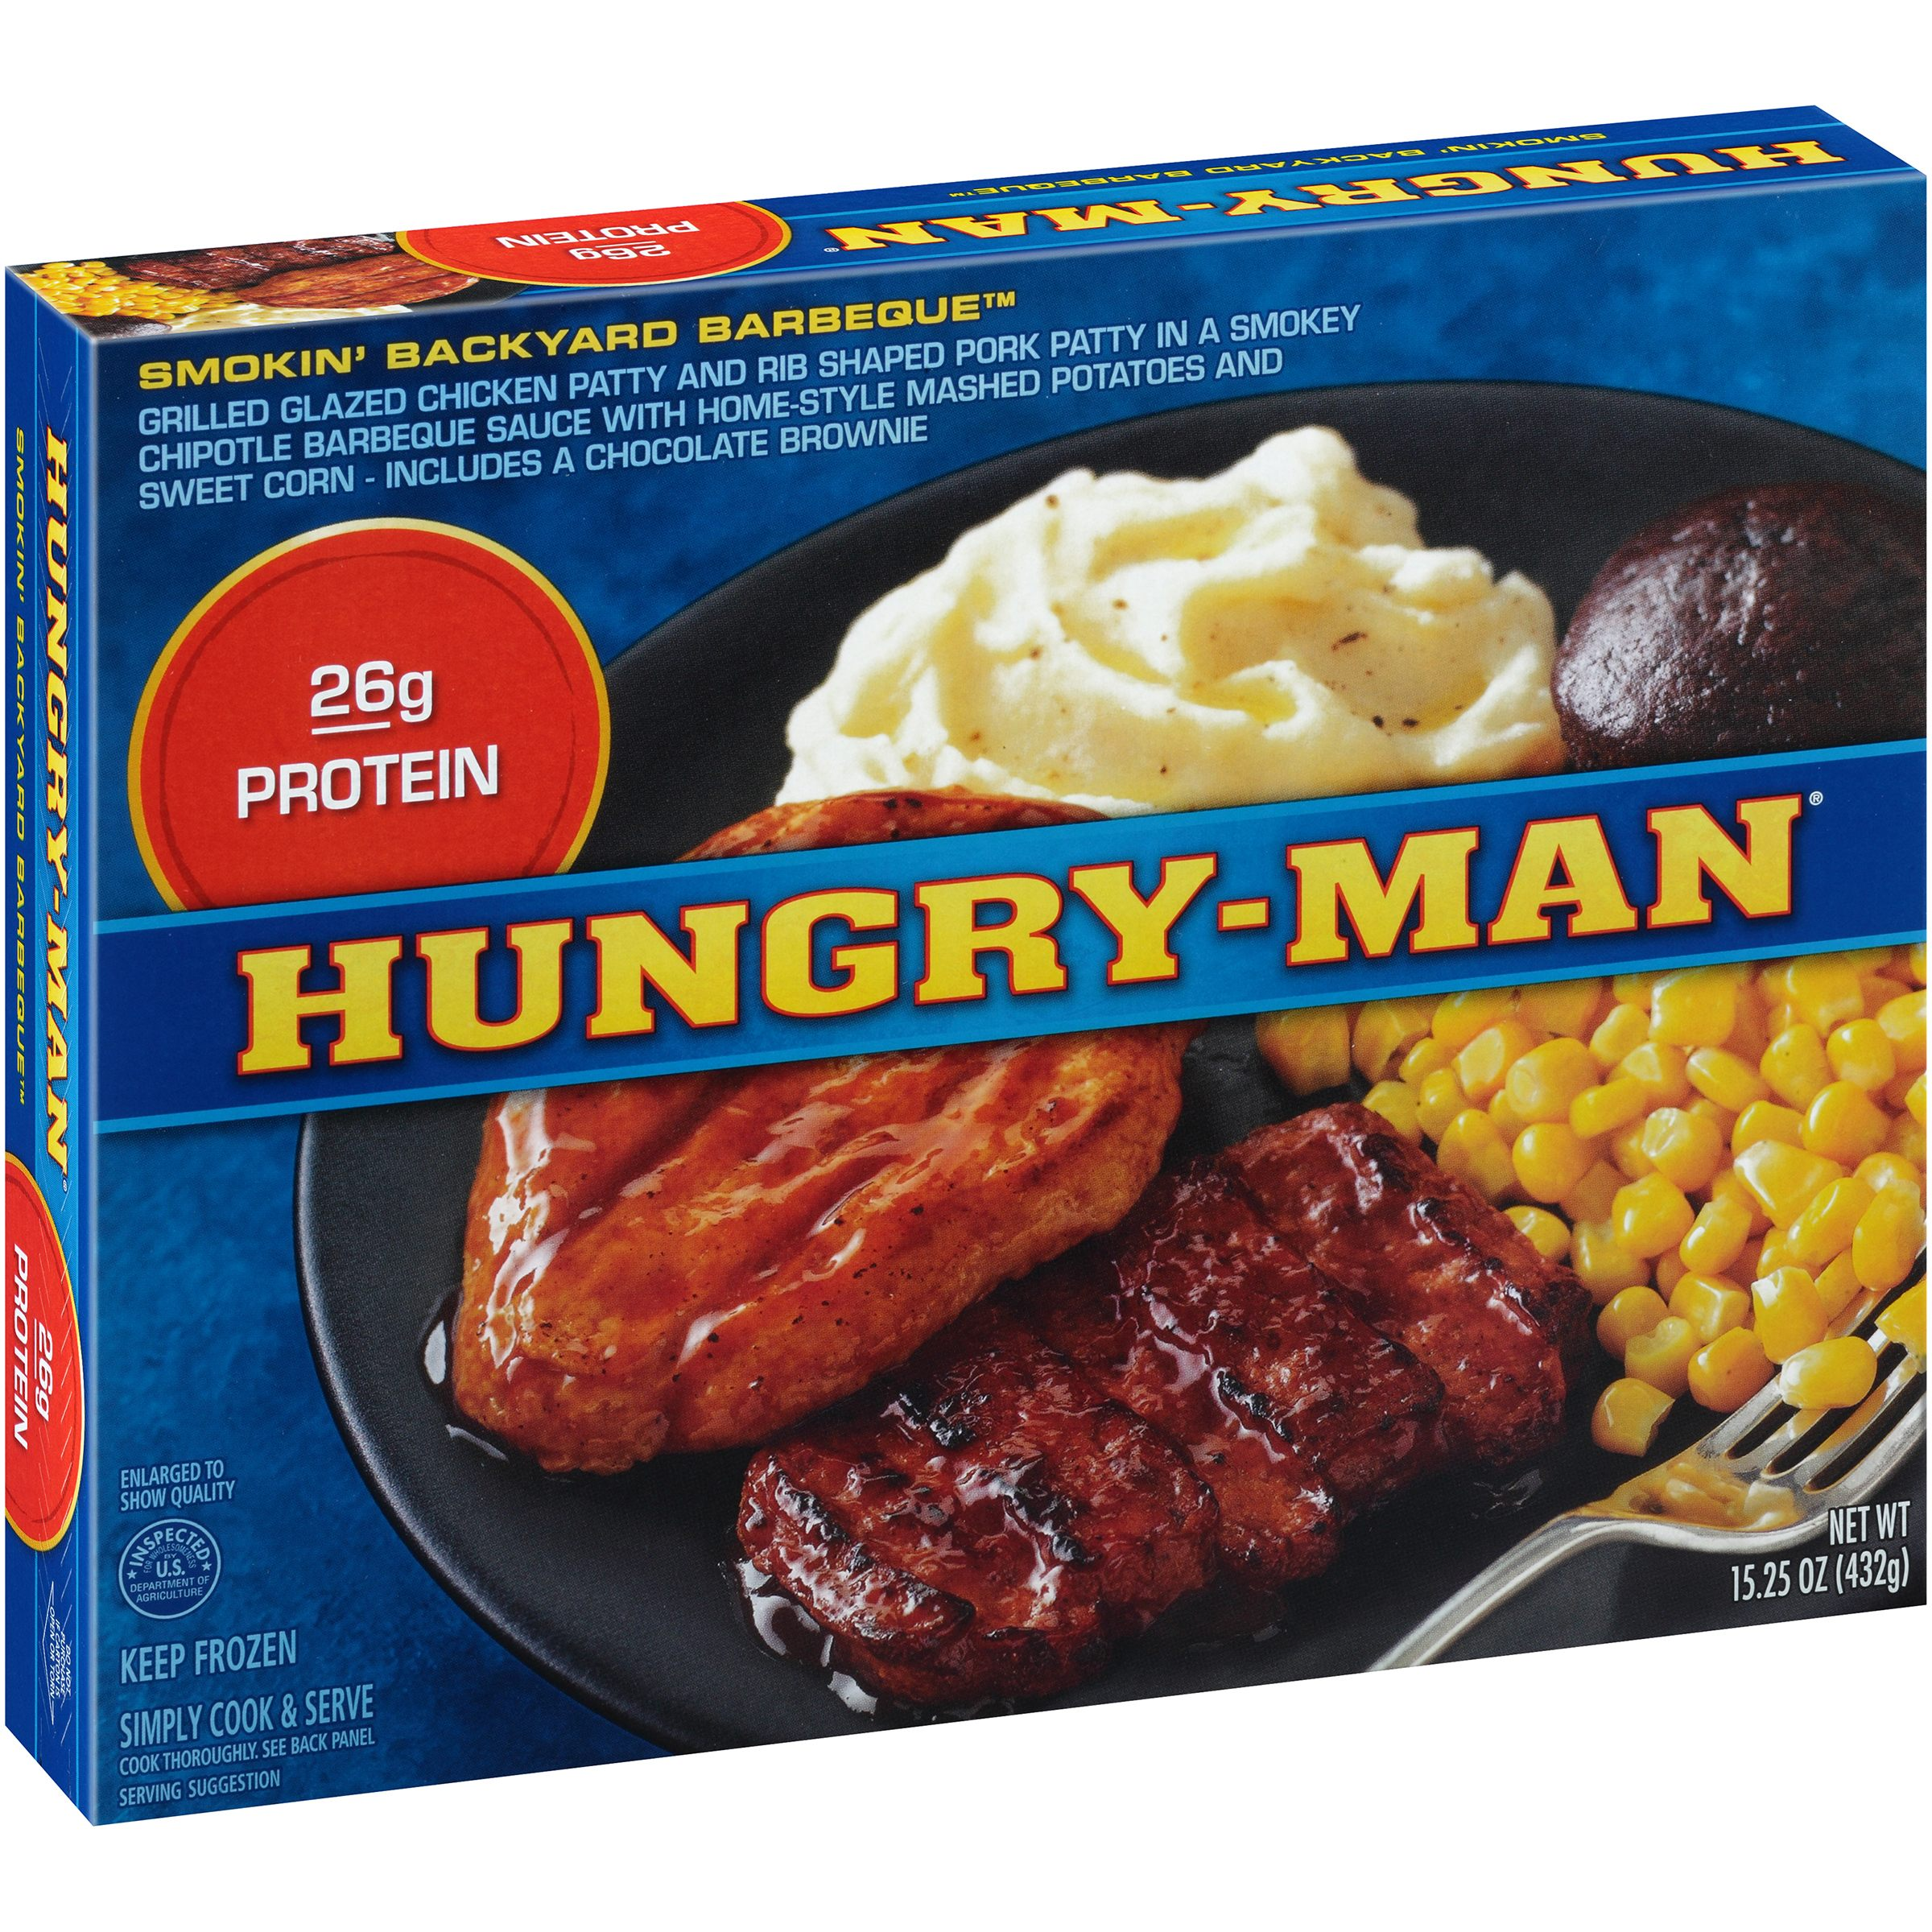 Hungry-Man® Smokin Backyard Barbeque™ 15.25 oz. Box